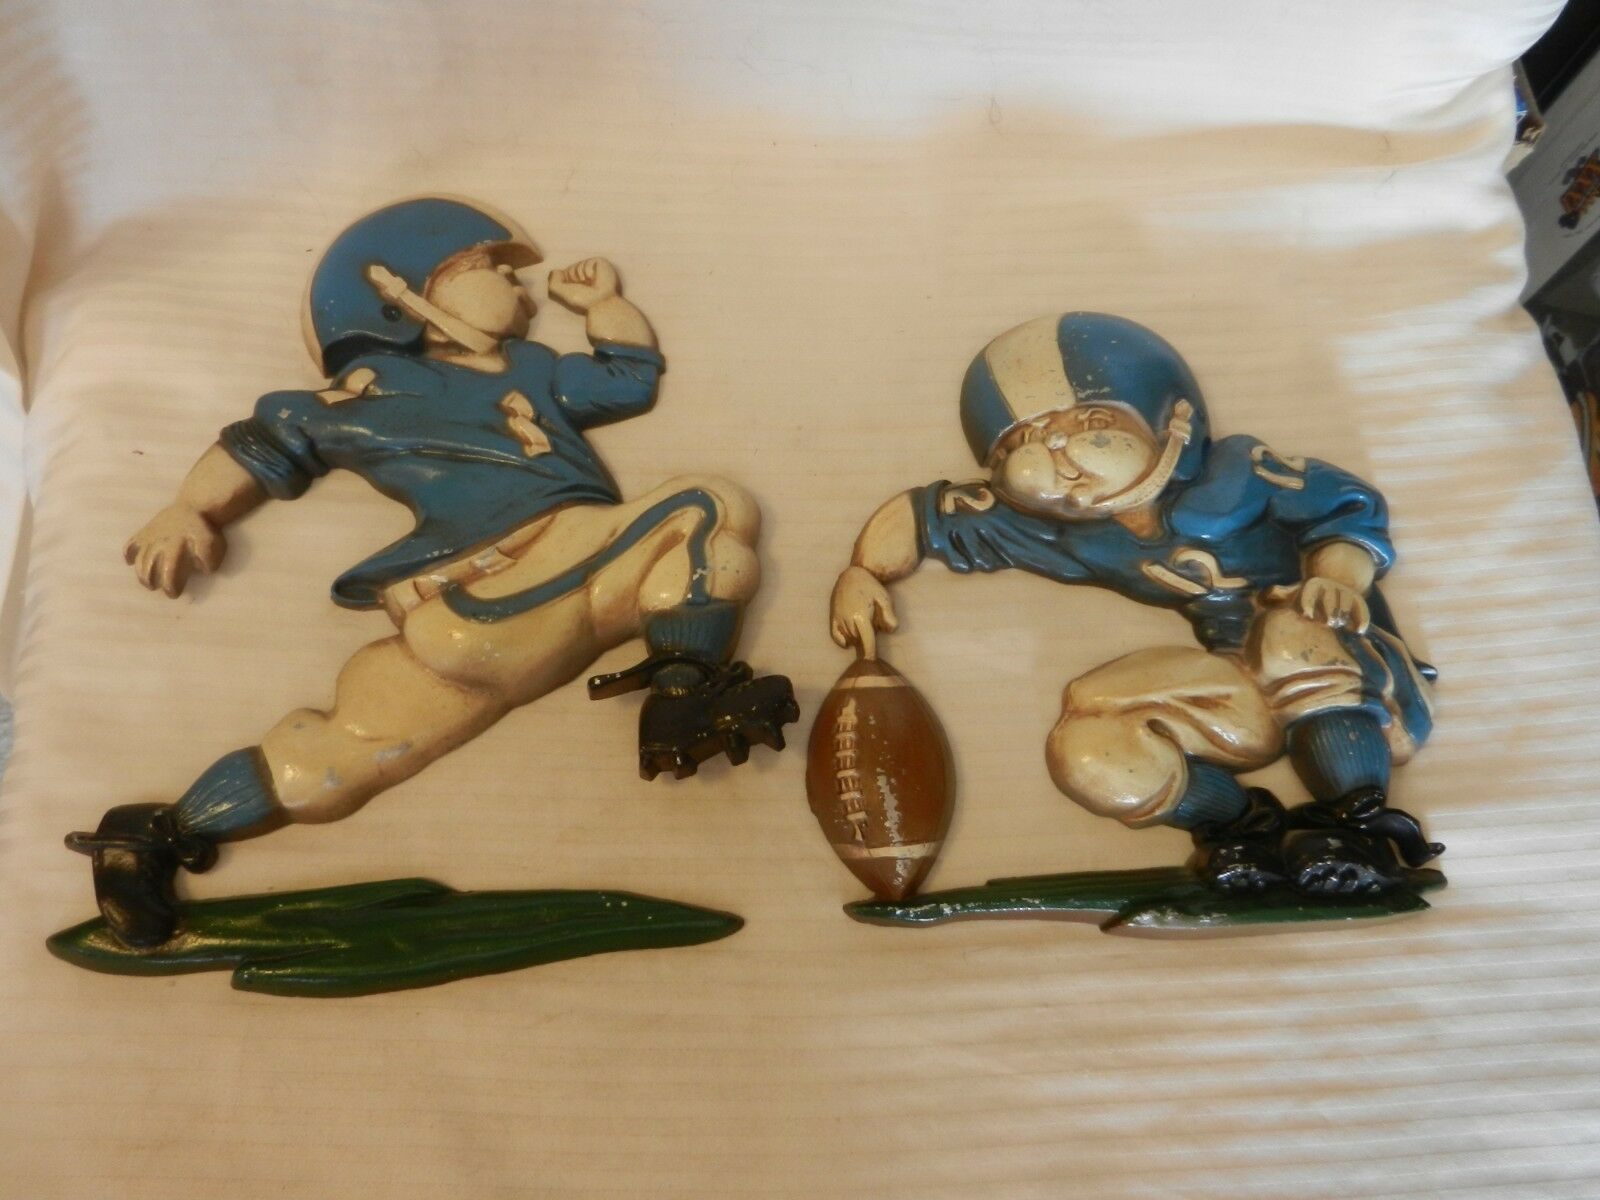 Pair of Vintage 1976 Homco Metal Football Players Wall Hanging Kicker & Holder - $44.55